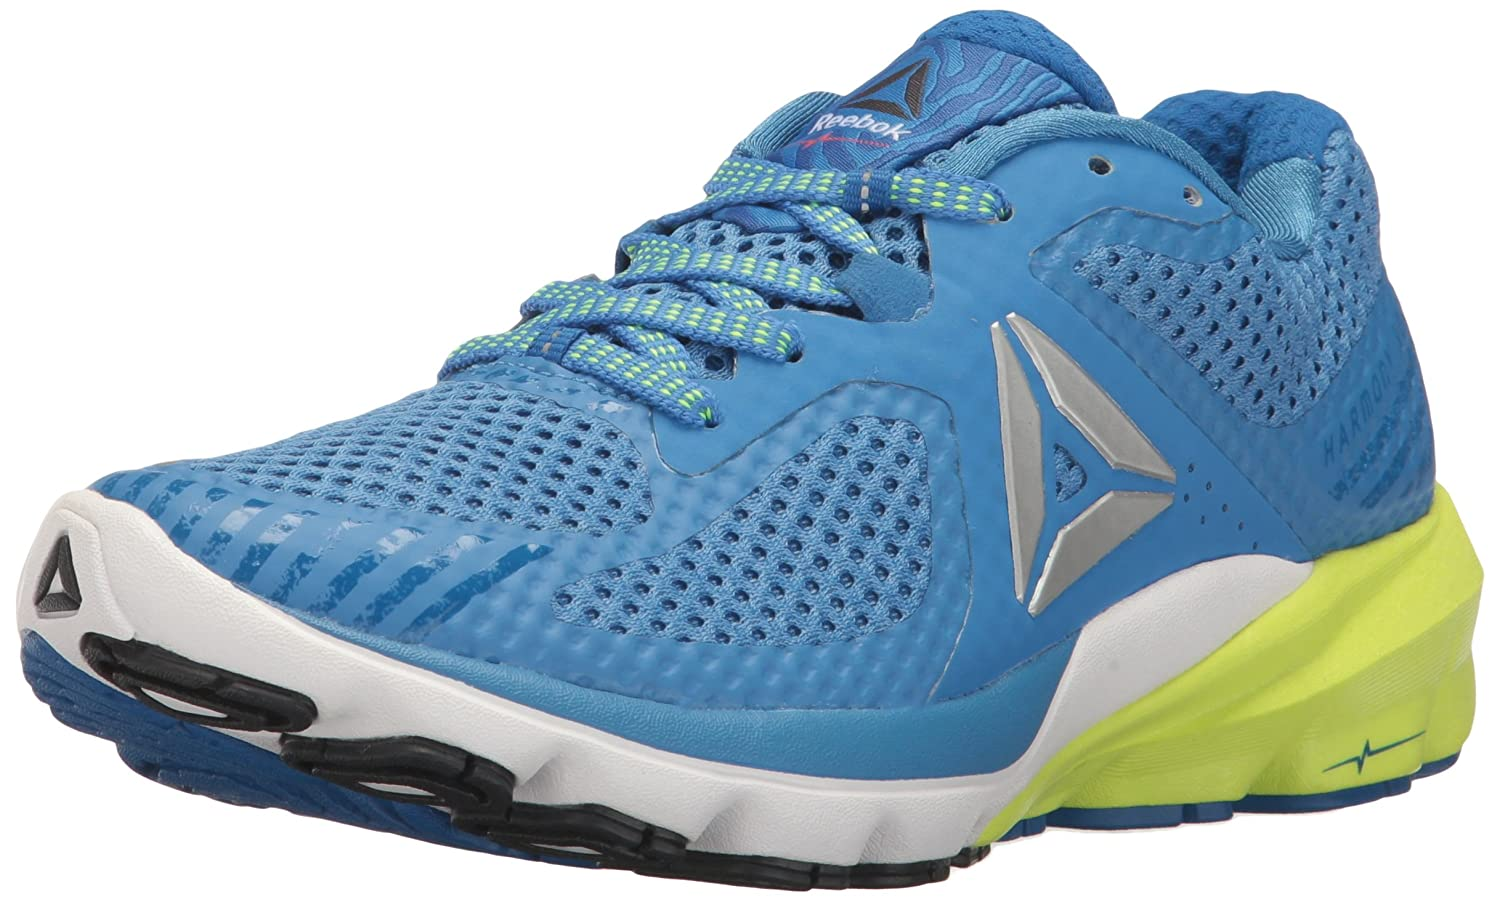 Reebok Women's OSR Harmony Road Running Shoe B06XWYM1WK Blue/Fire 11 B(M) US|Echo Blue/Awesome Blue/Fire B06XWYM1WK Coral/White/Lead/Yellow dd8773